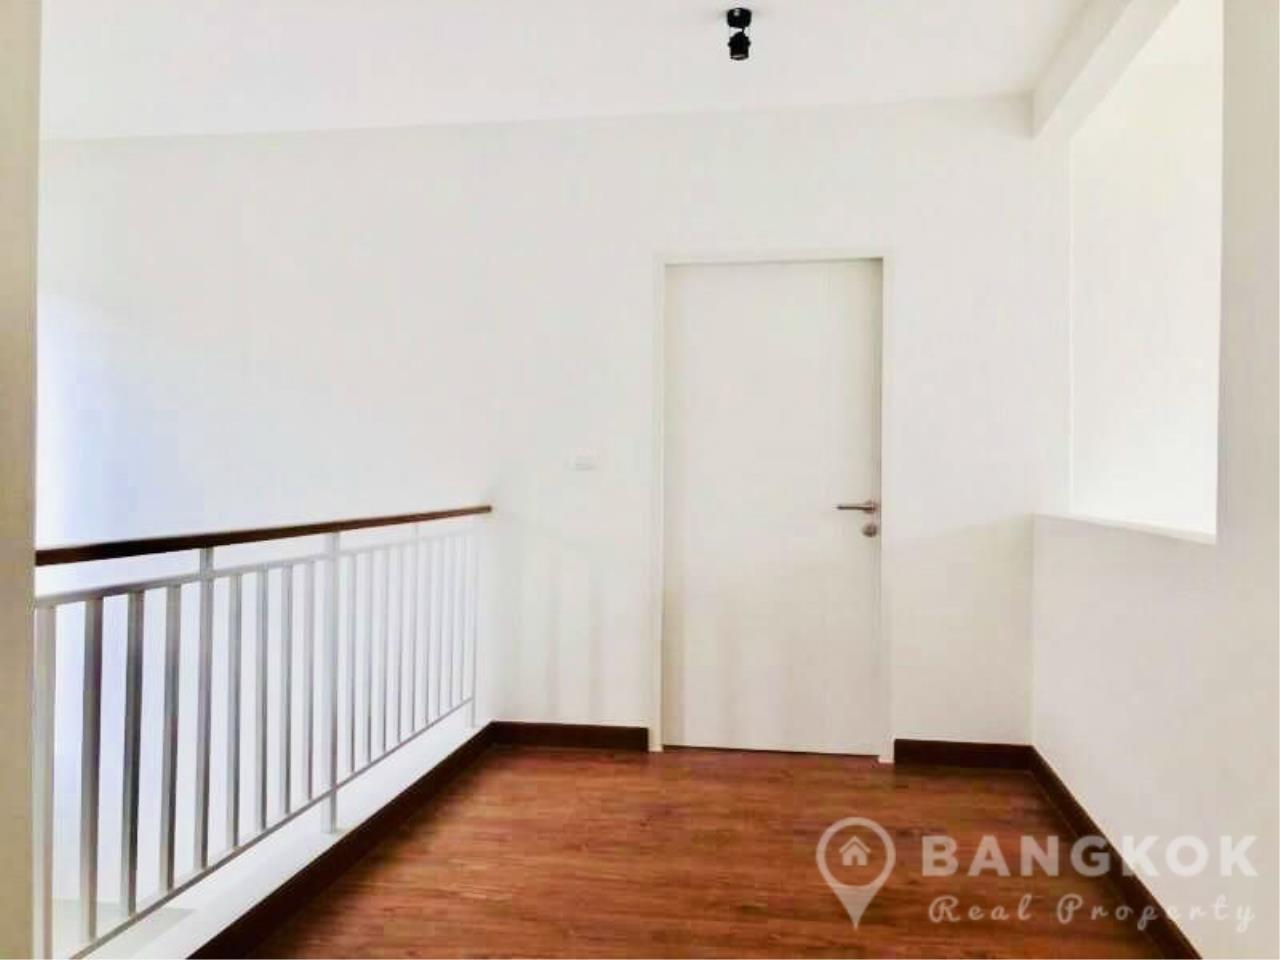 Bangkok Real Property Agency's Brand New Detached 4 Bed 4 Bath House just off Srinakarin Road 9